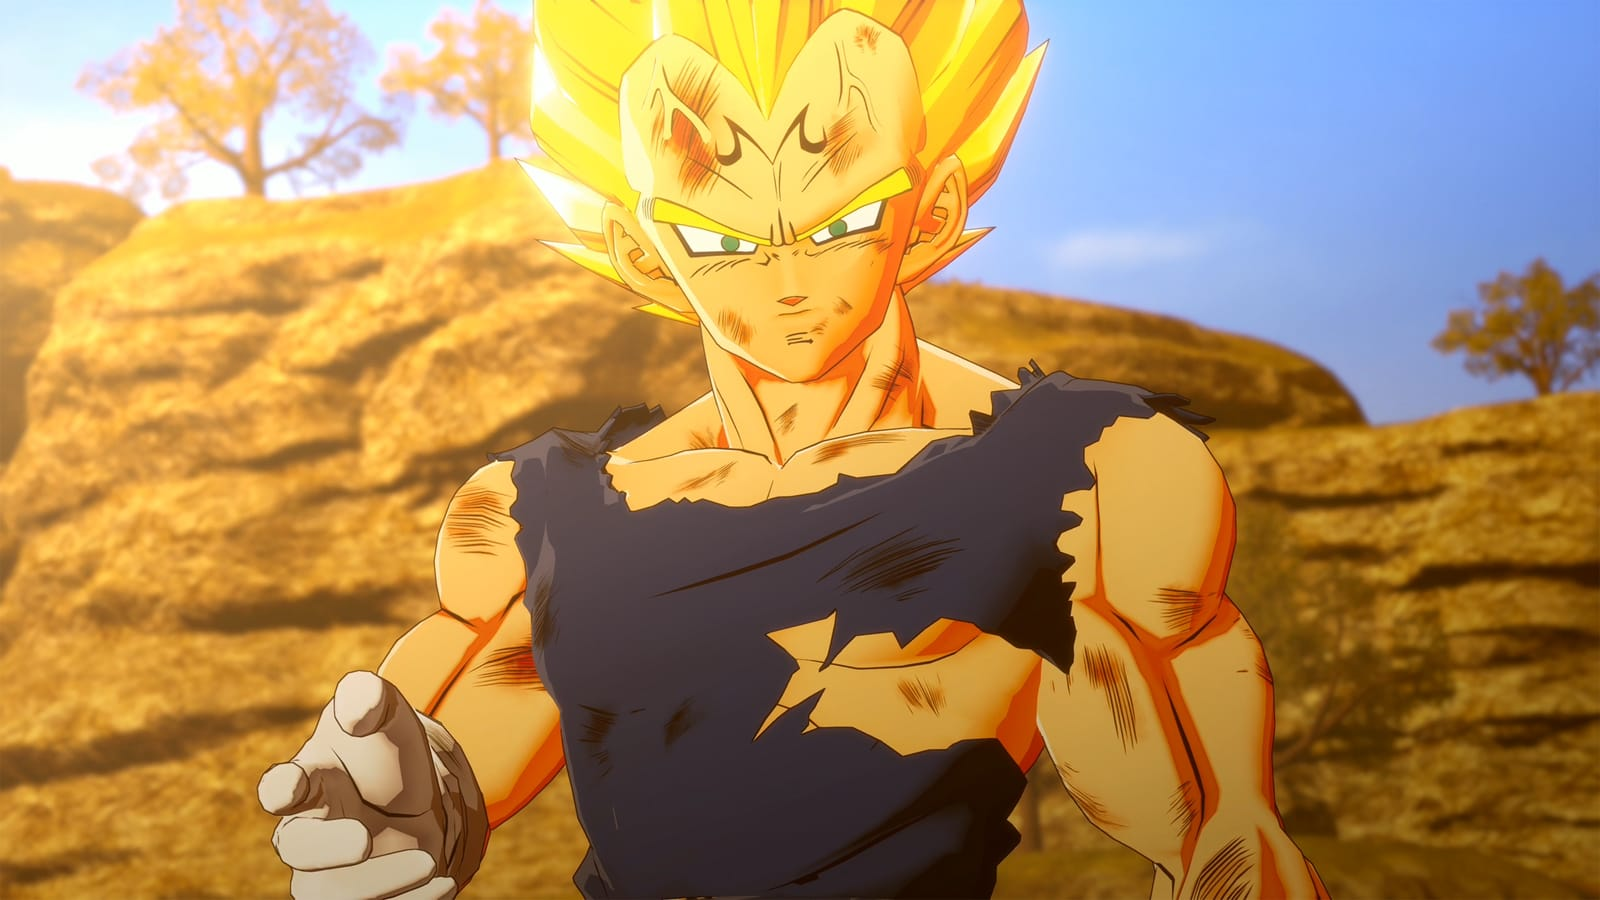 'Dragon Ball Z: Kakarot' arrives on January 17th, 2020